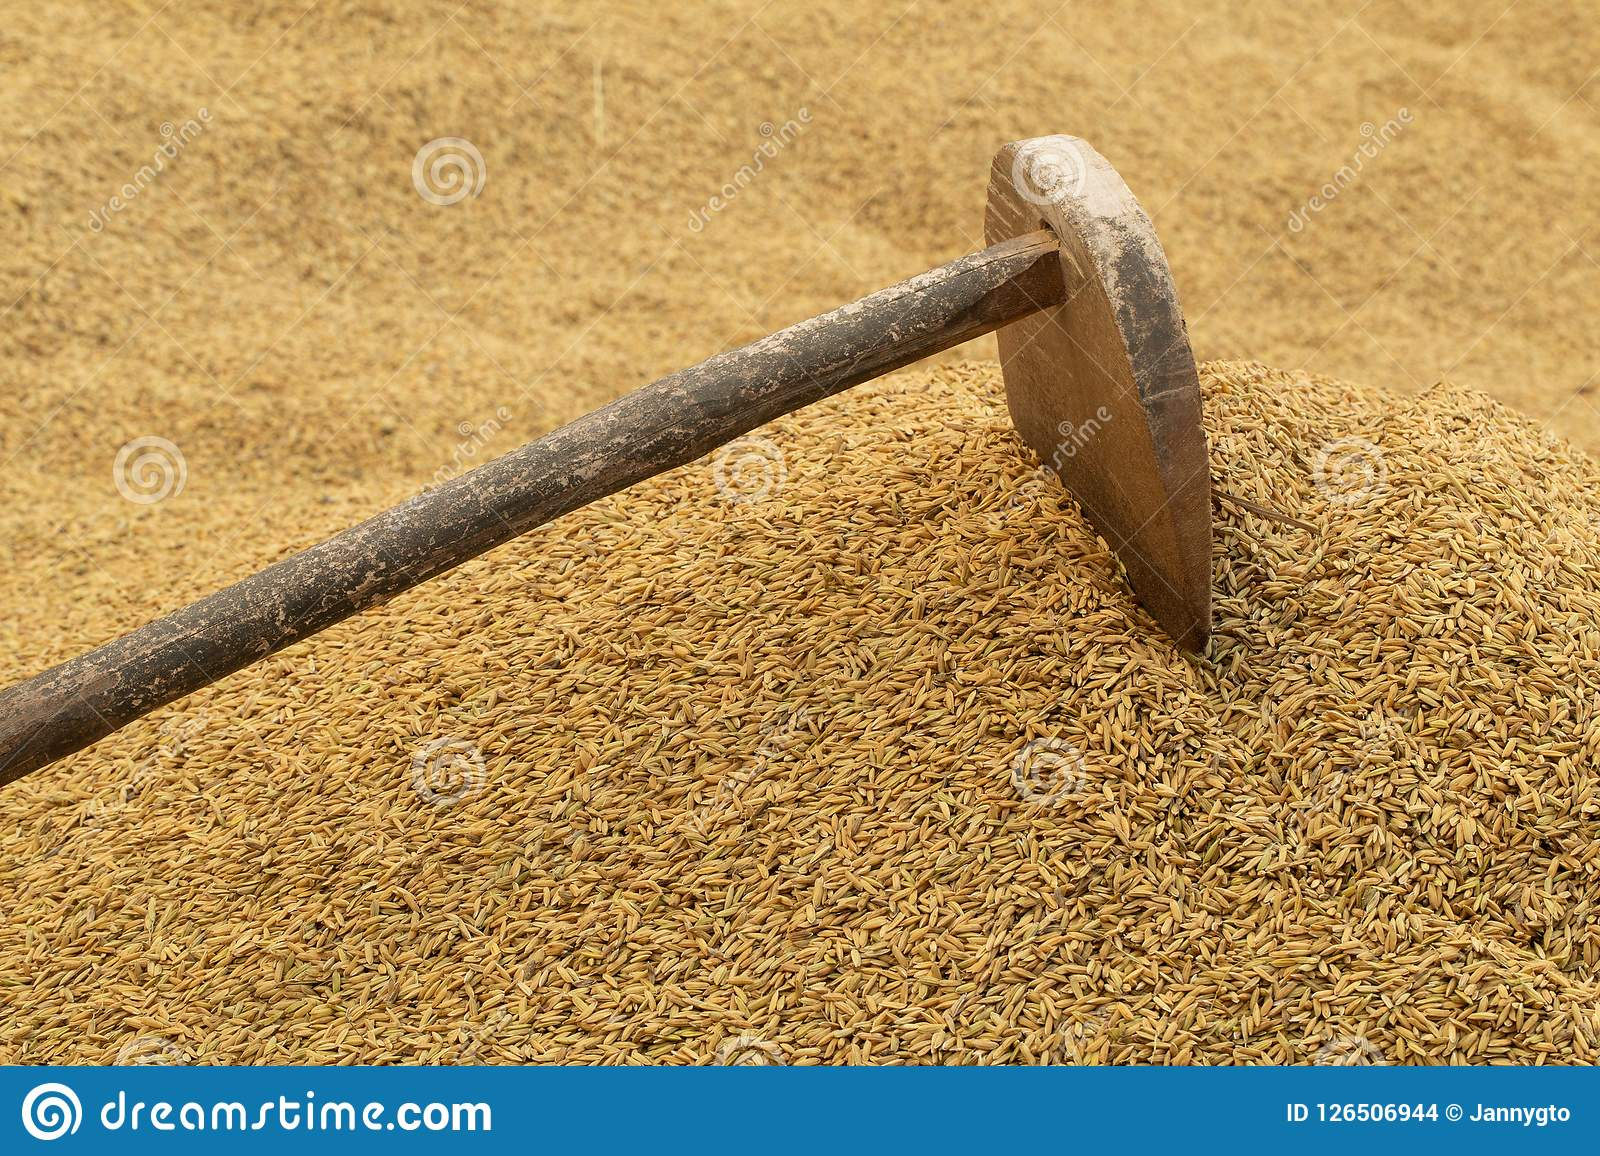 rice farm ancient agriculture tools on paddy background farme